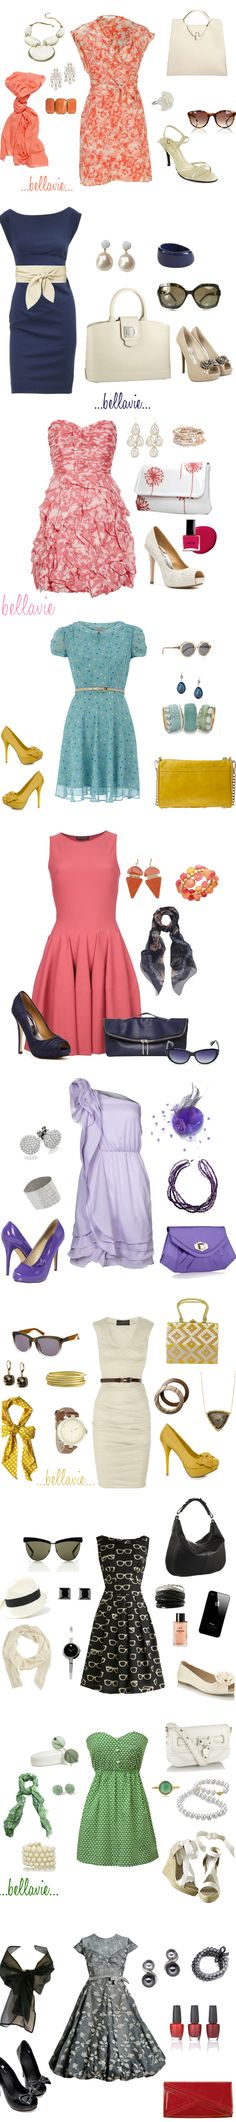 Take a look at all these cute outfits created by Polyvore member bellaviephotography! She's great at pairing pretty #dresses with the perfect #heels and #bags.  Created on Polyvore